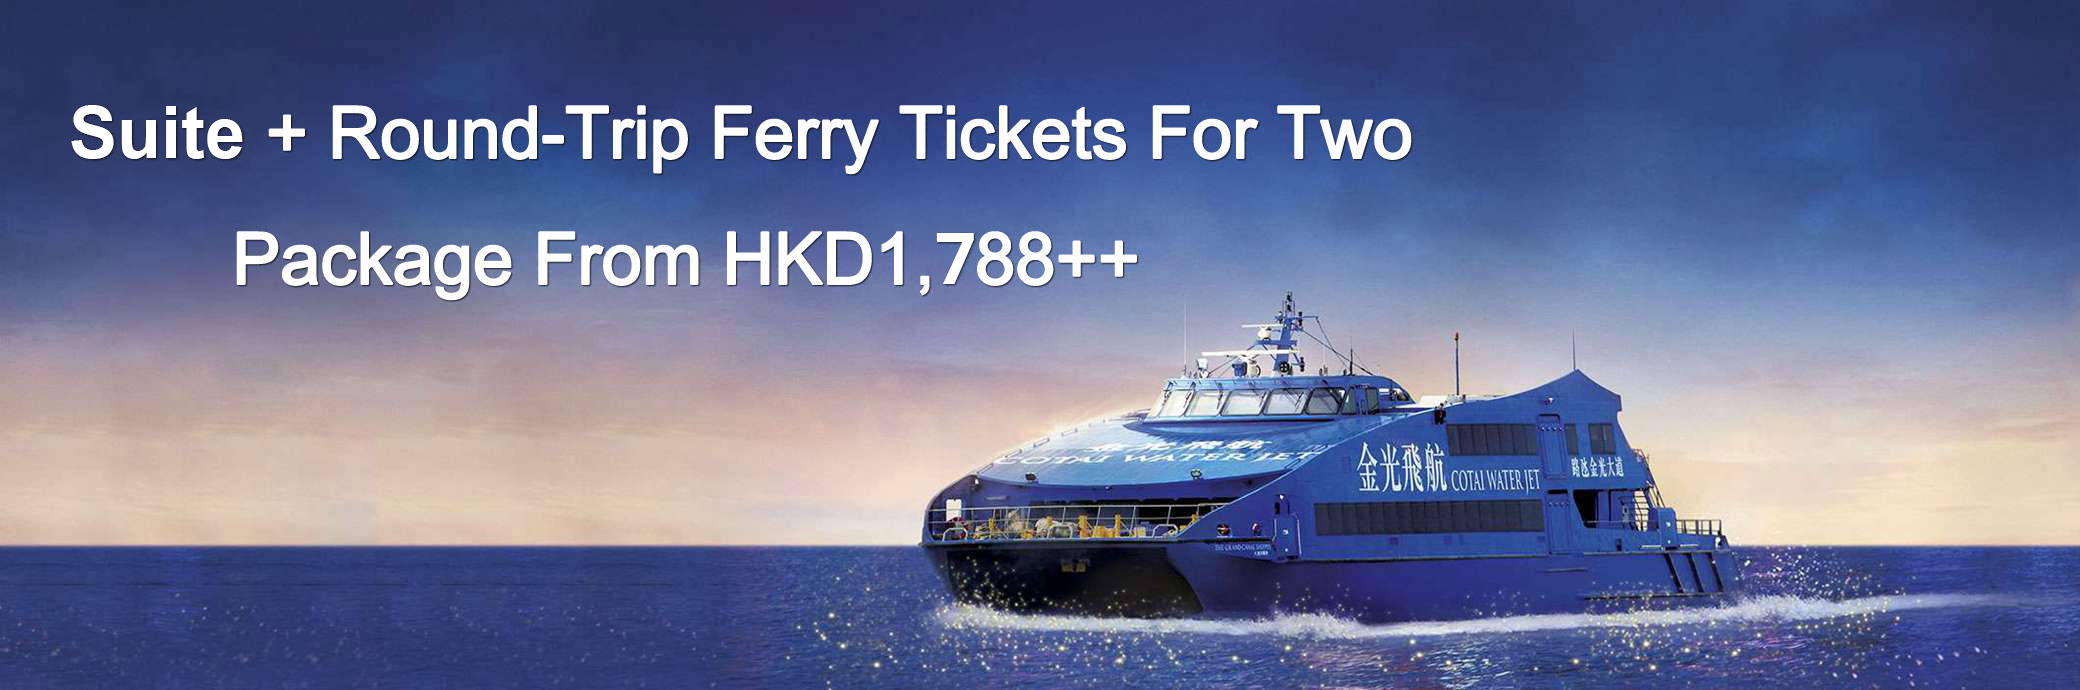 Ferry Ticket Package - フェリーチケット付きパッケージ